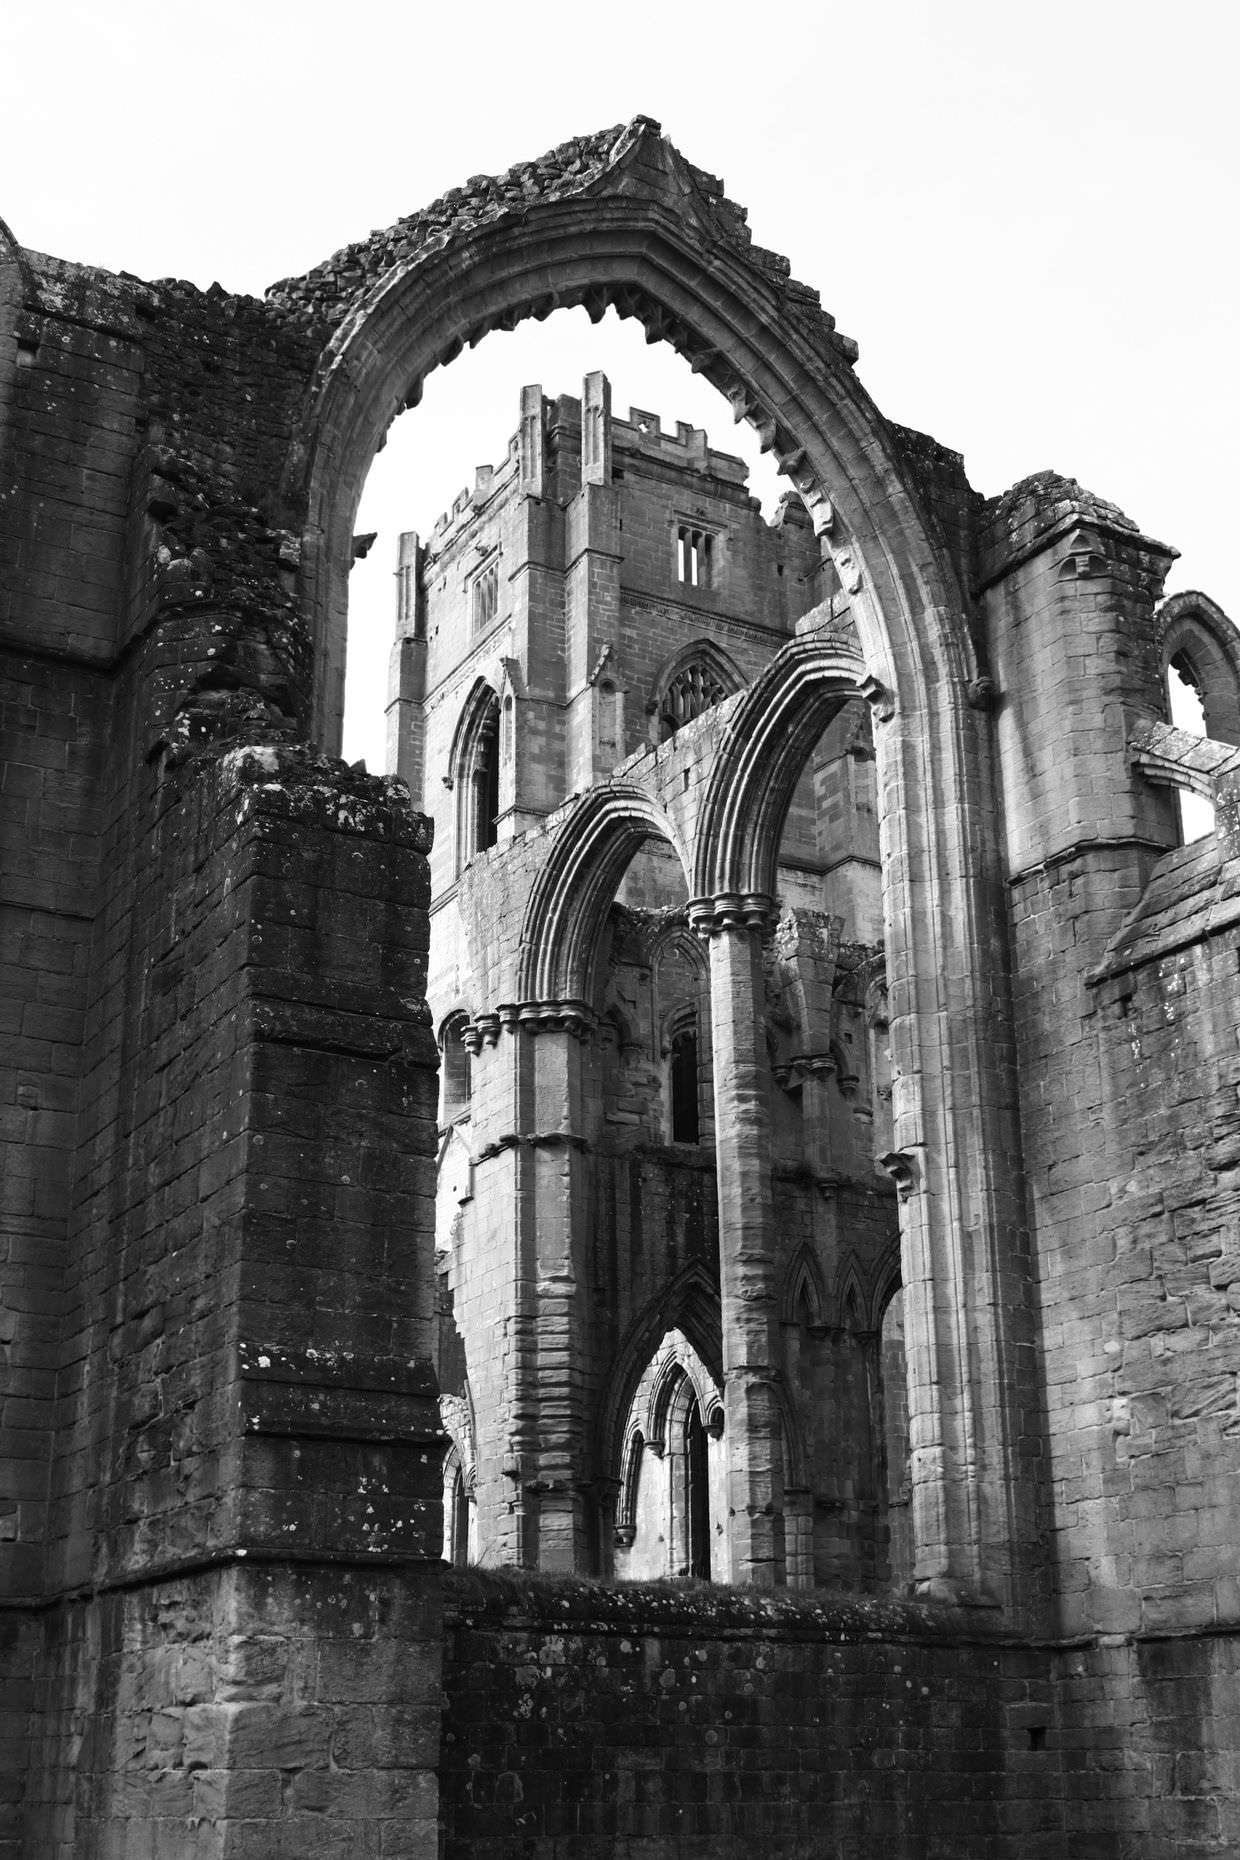 The ancient and beautiful Fountains Abbey